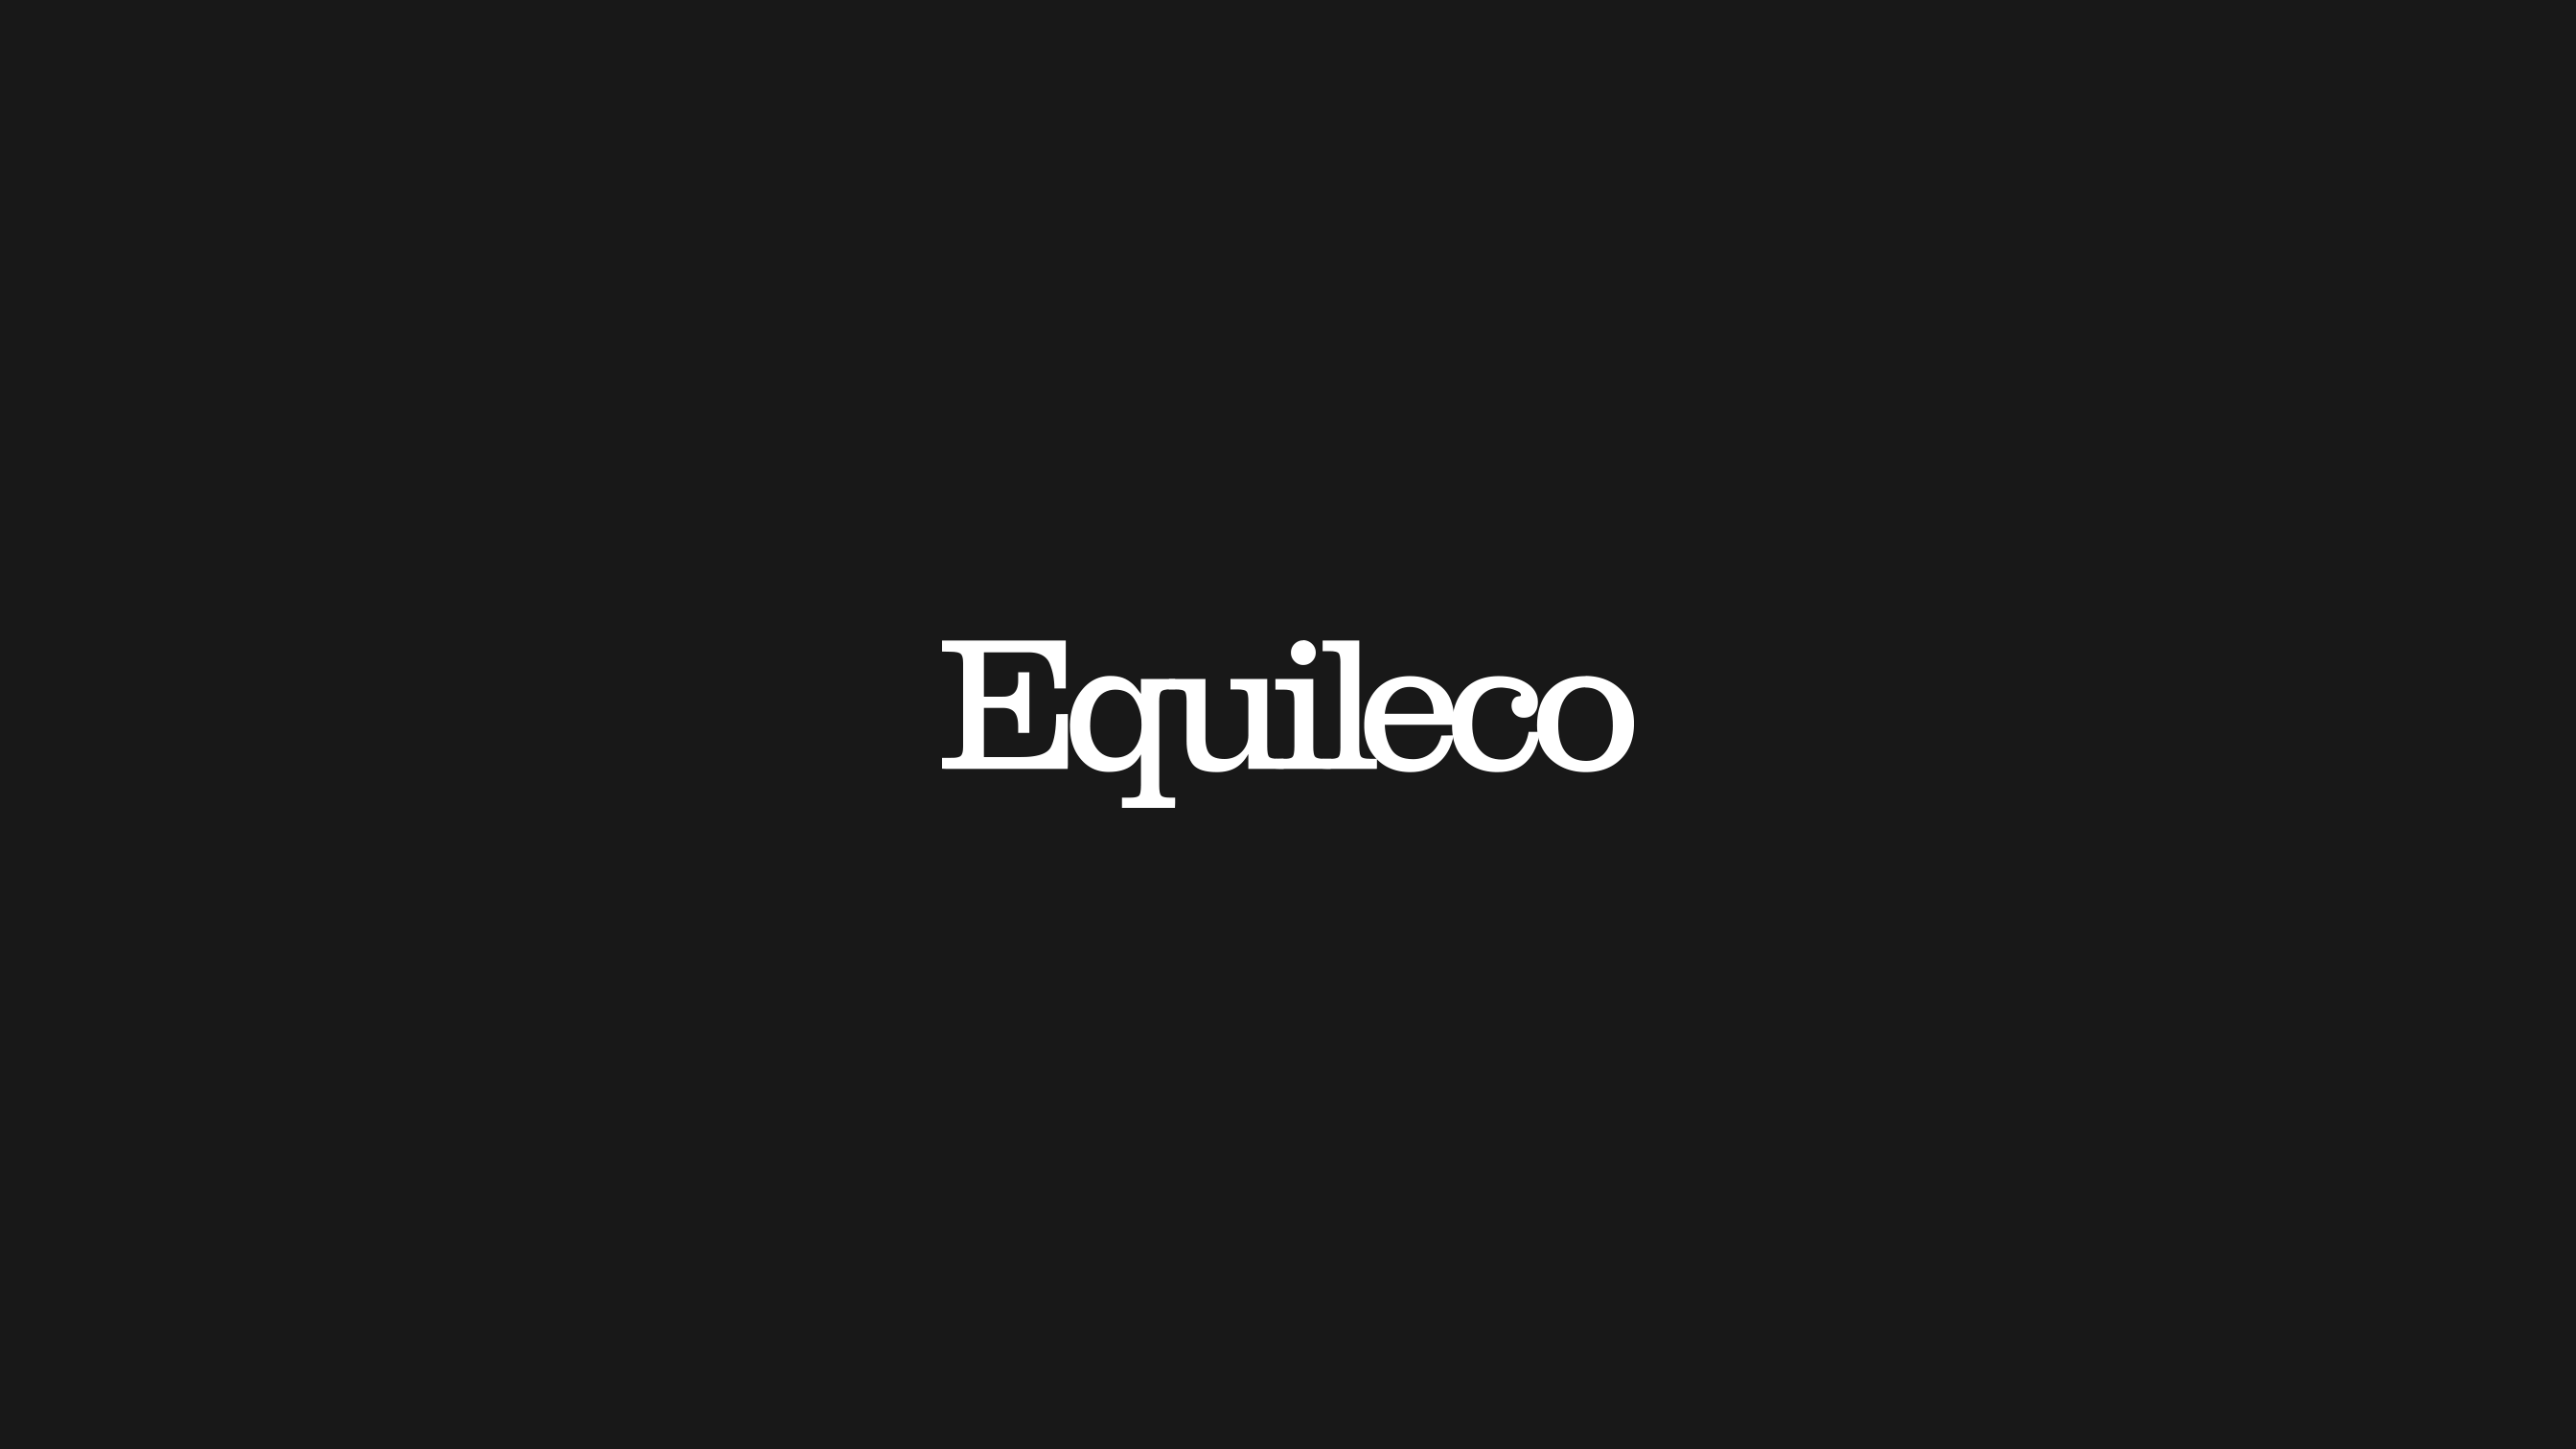 showcase-logotype-equileco